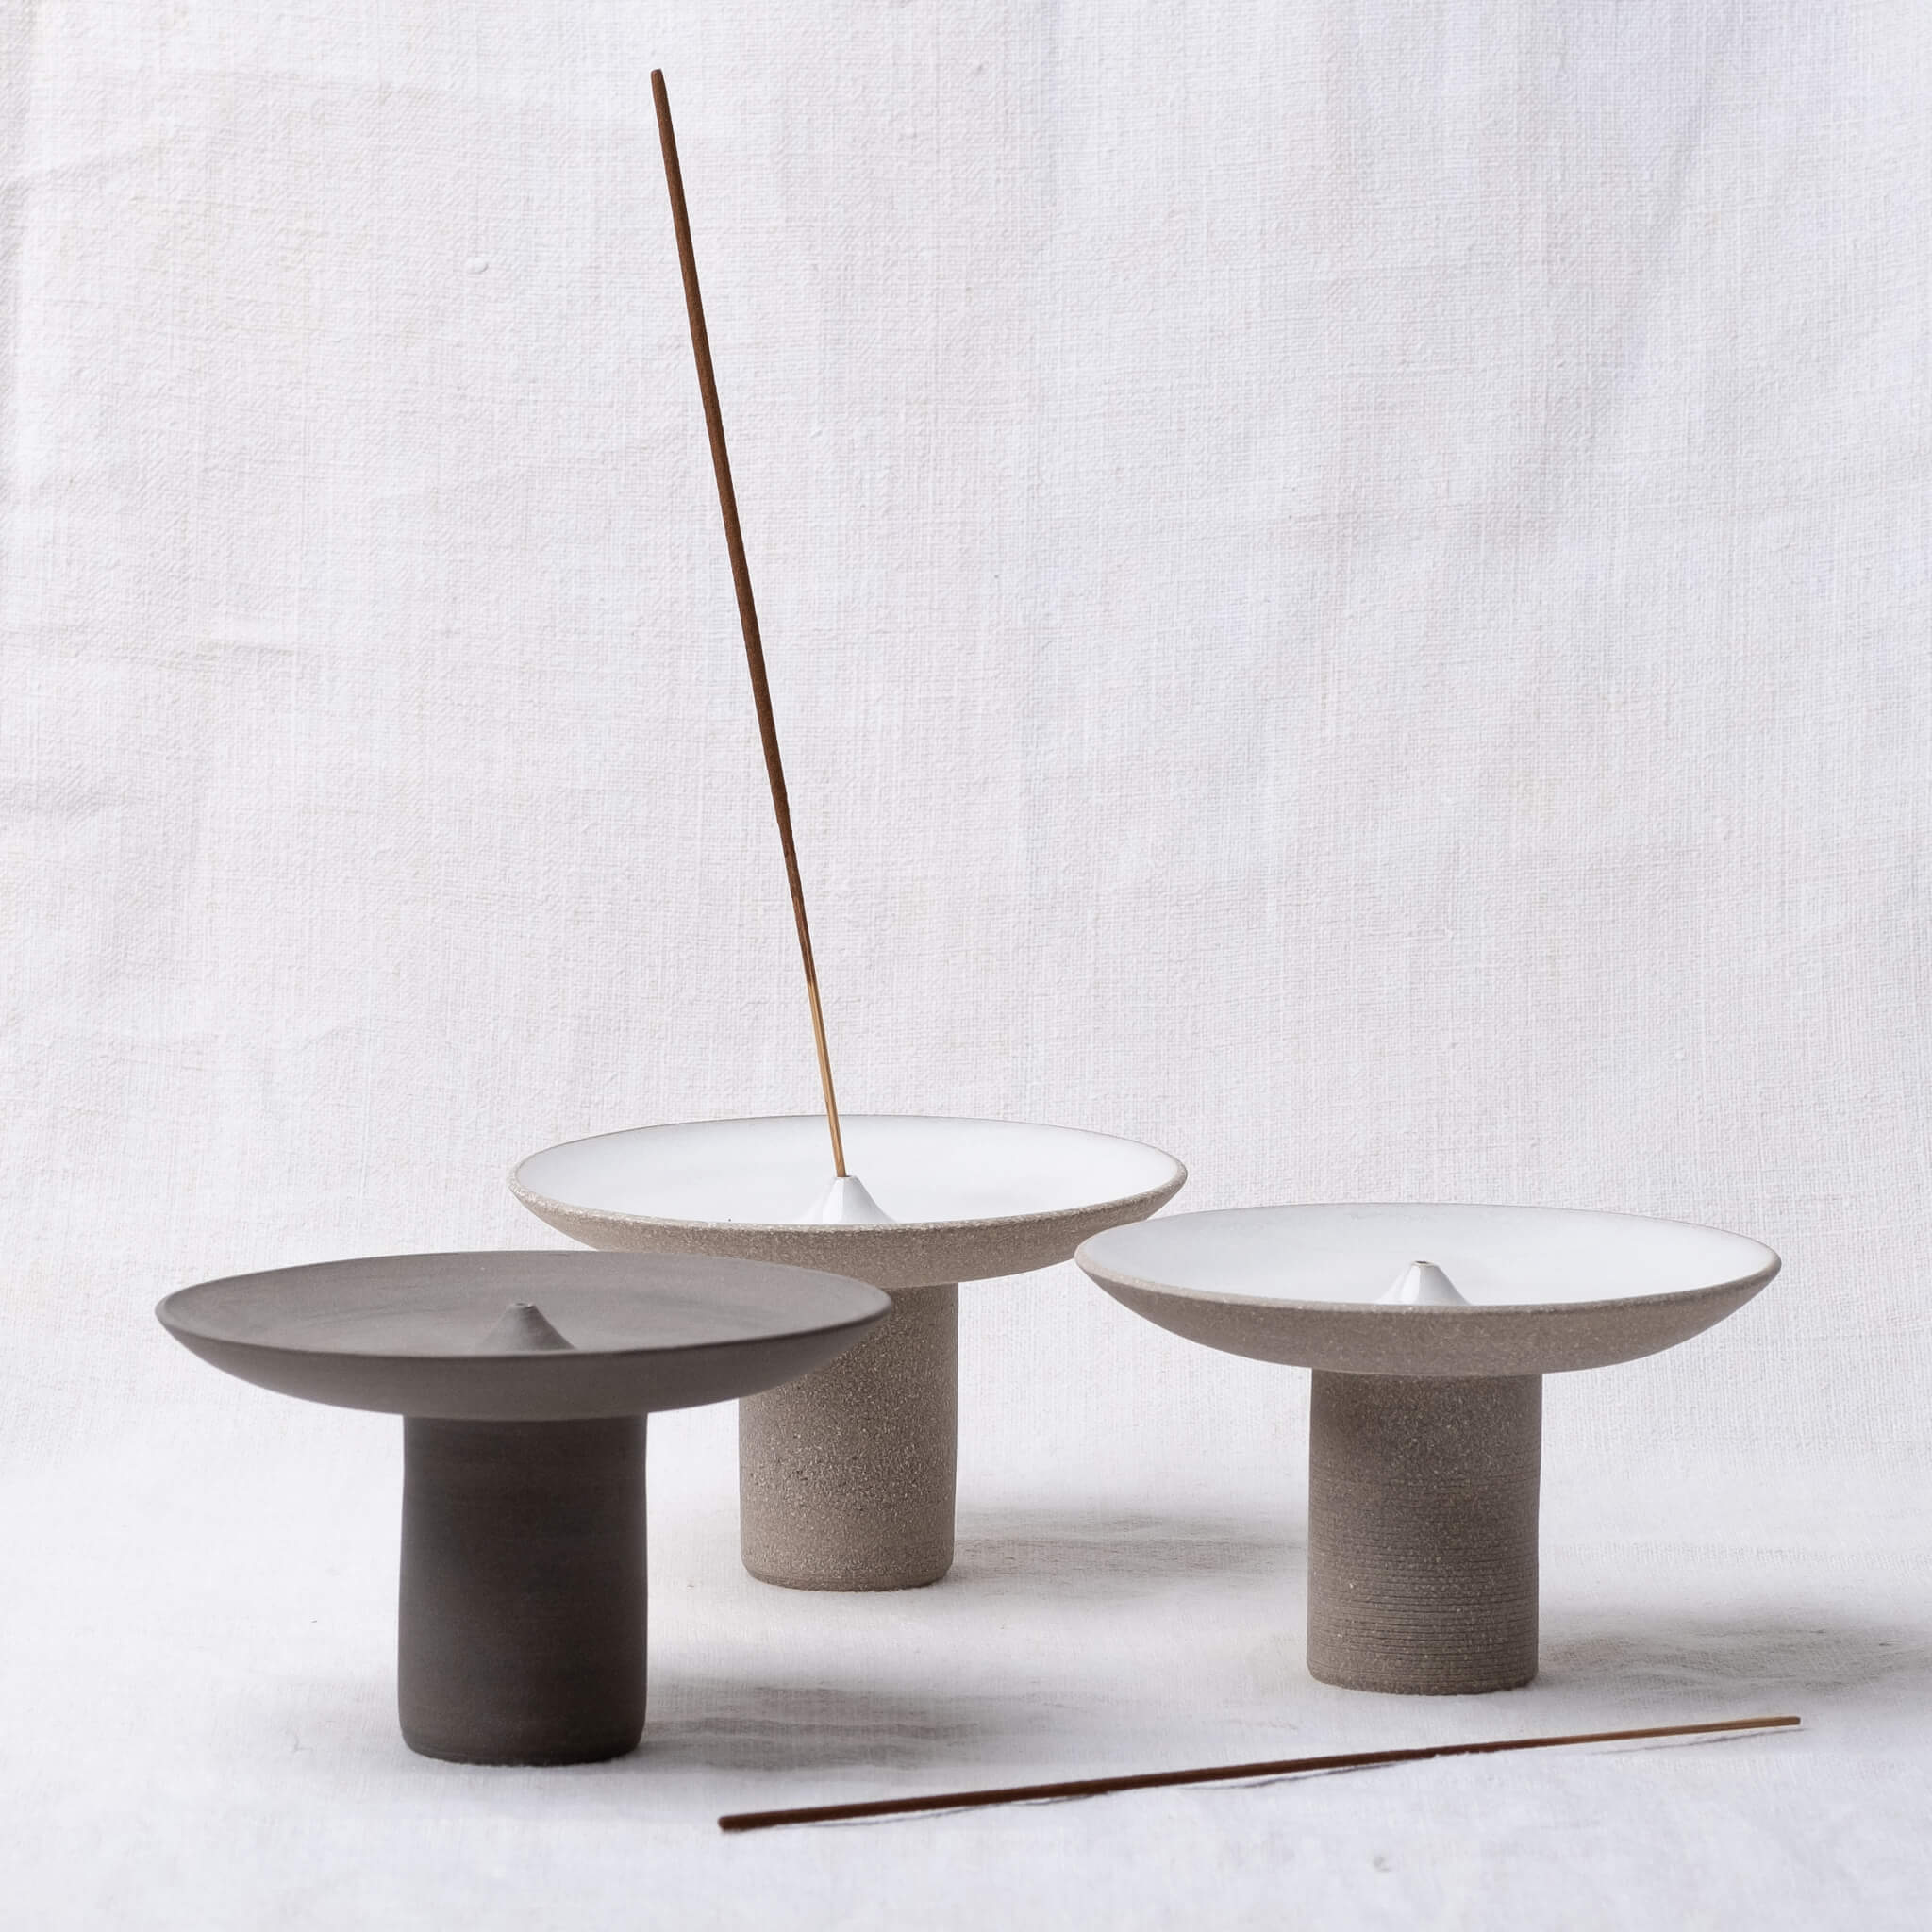 Group image of Studio Brae Offering Incense Holders